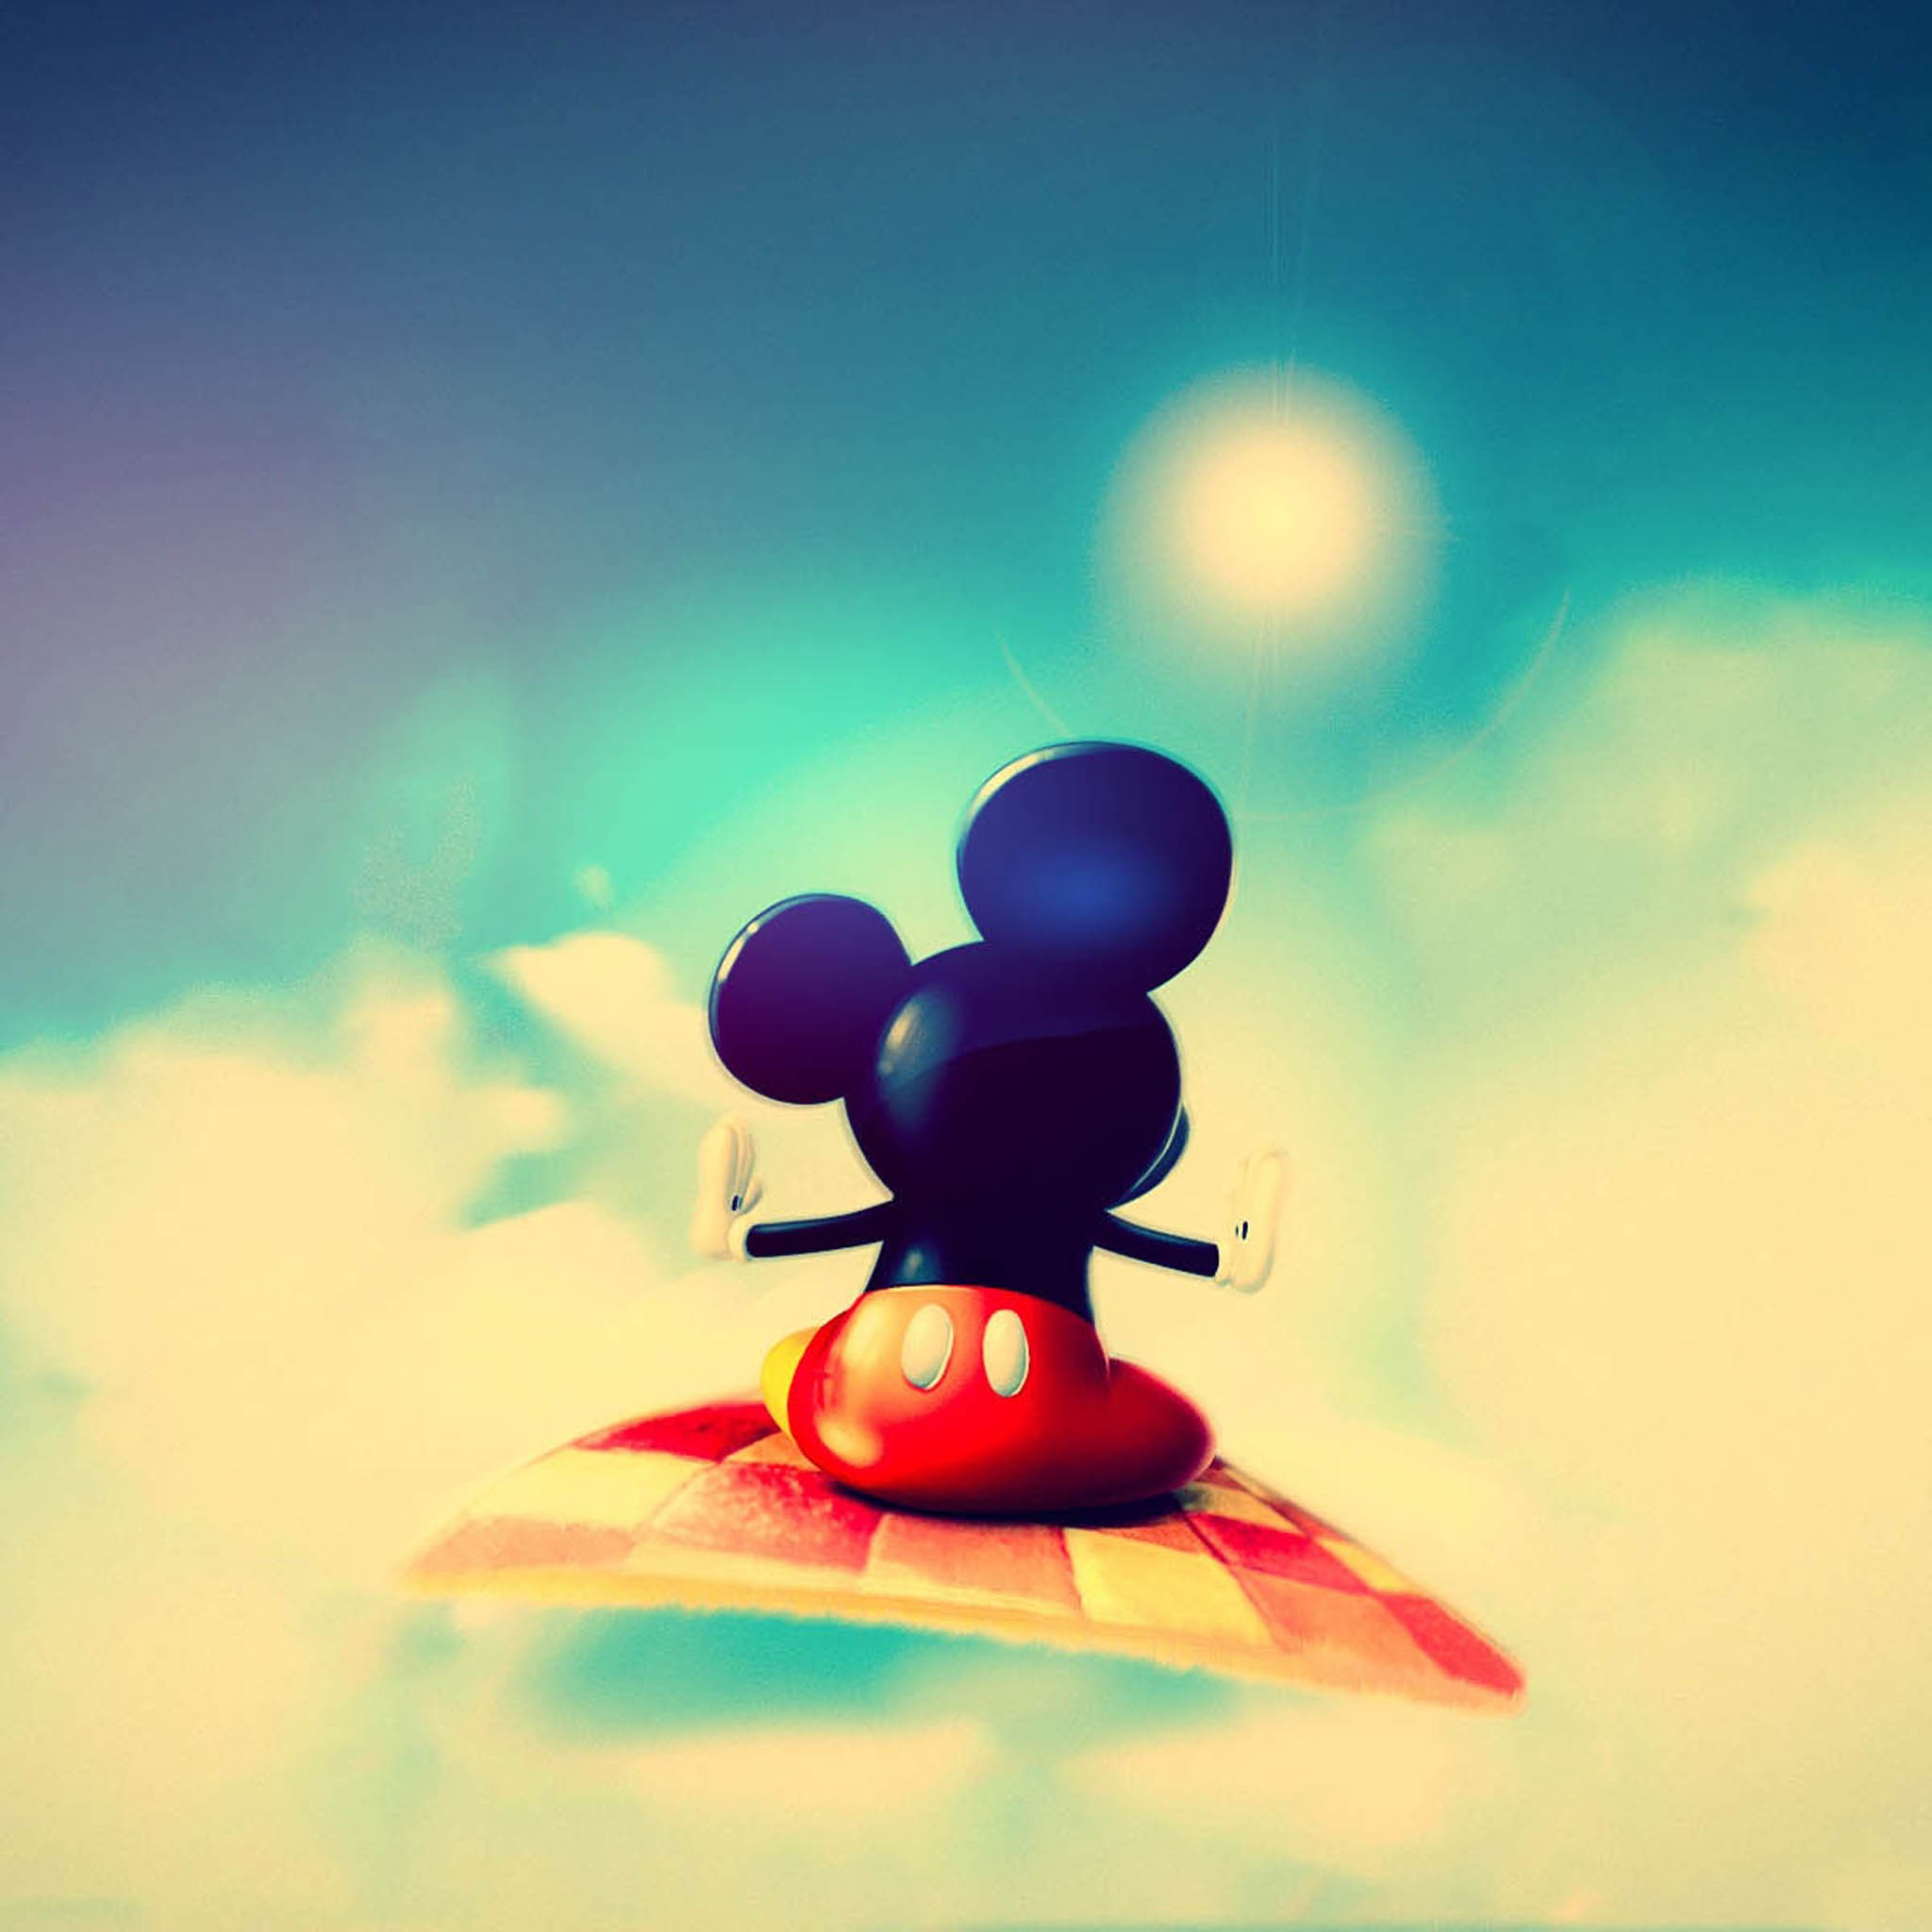 [48+] Cute Mickey Mouse IPhone Wallpaper On WallpaperSafari